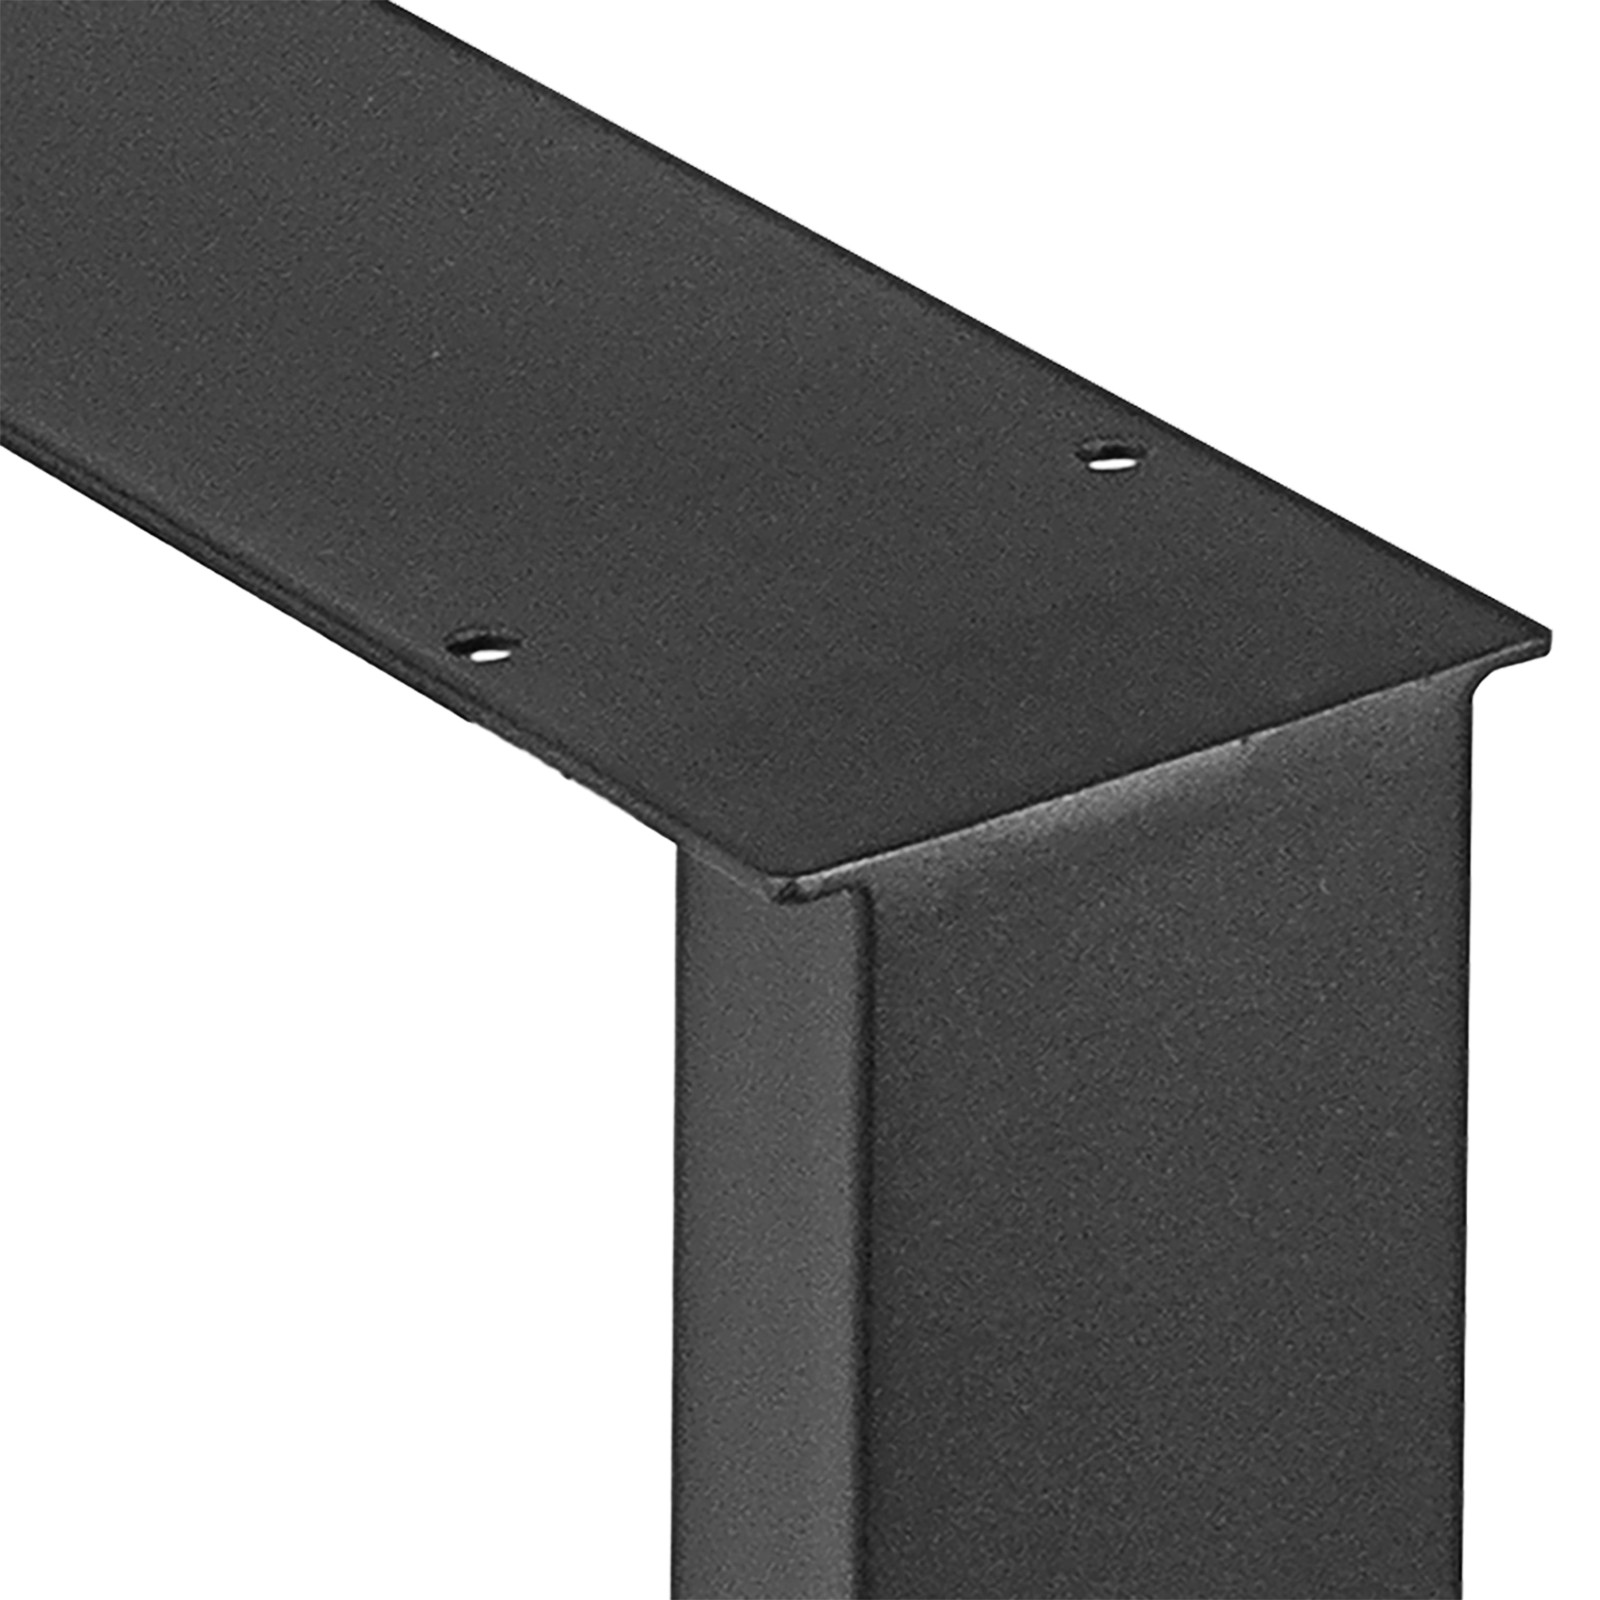 2X-Table-Legs-Black-Dining-Table-Leg-Heavy-Duty-Computer-Desk-Legs-Rectangle thumbnail 67